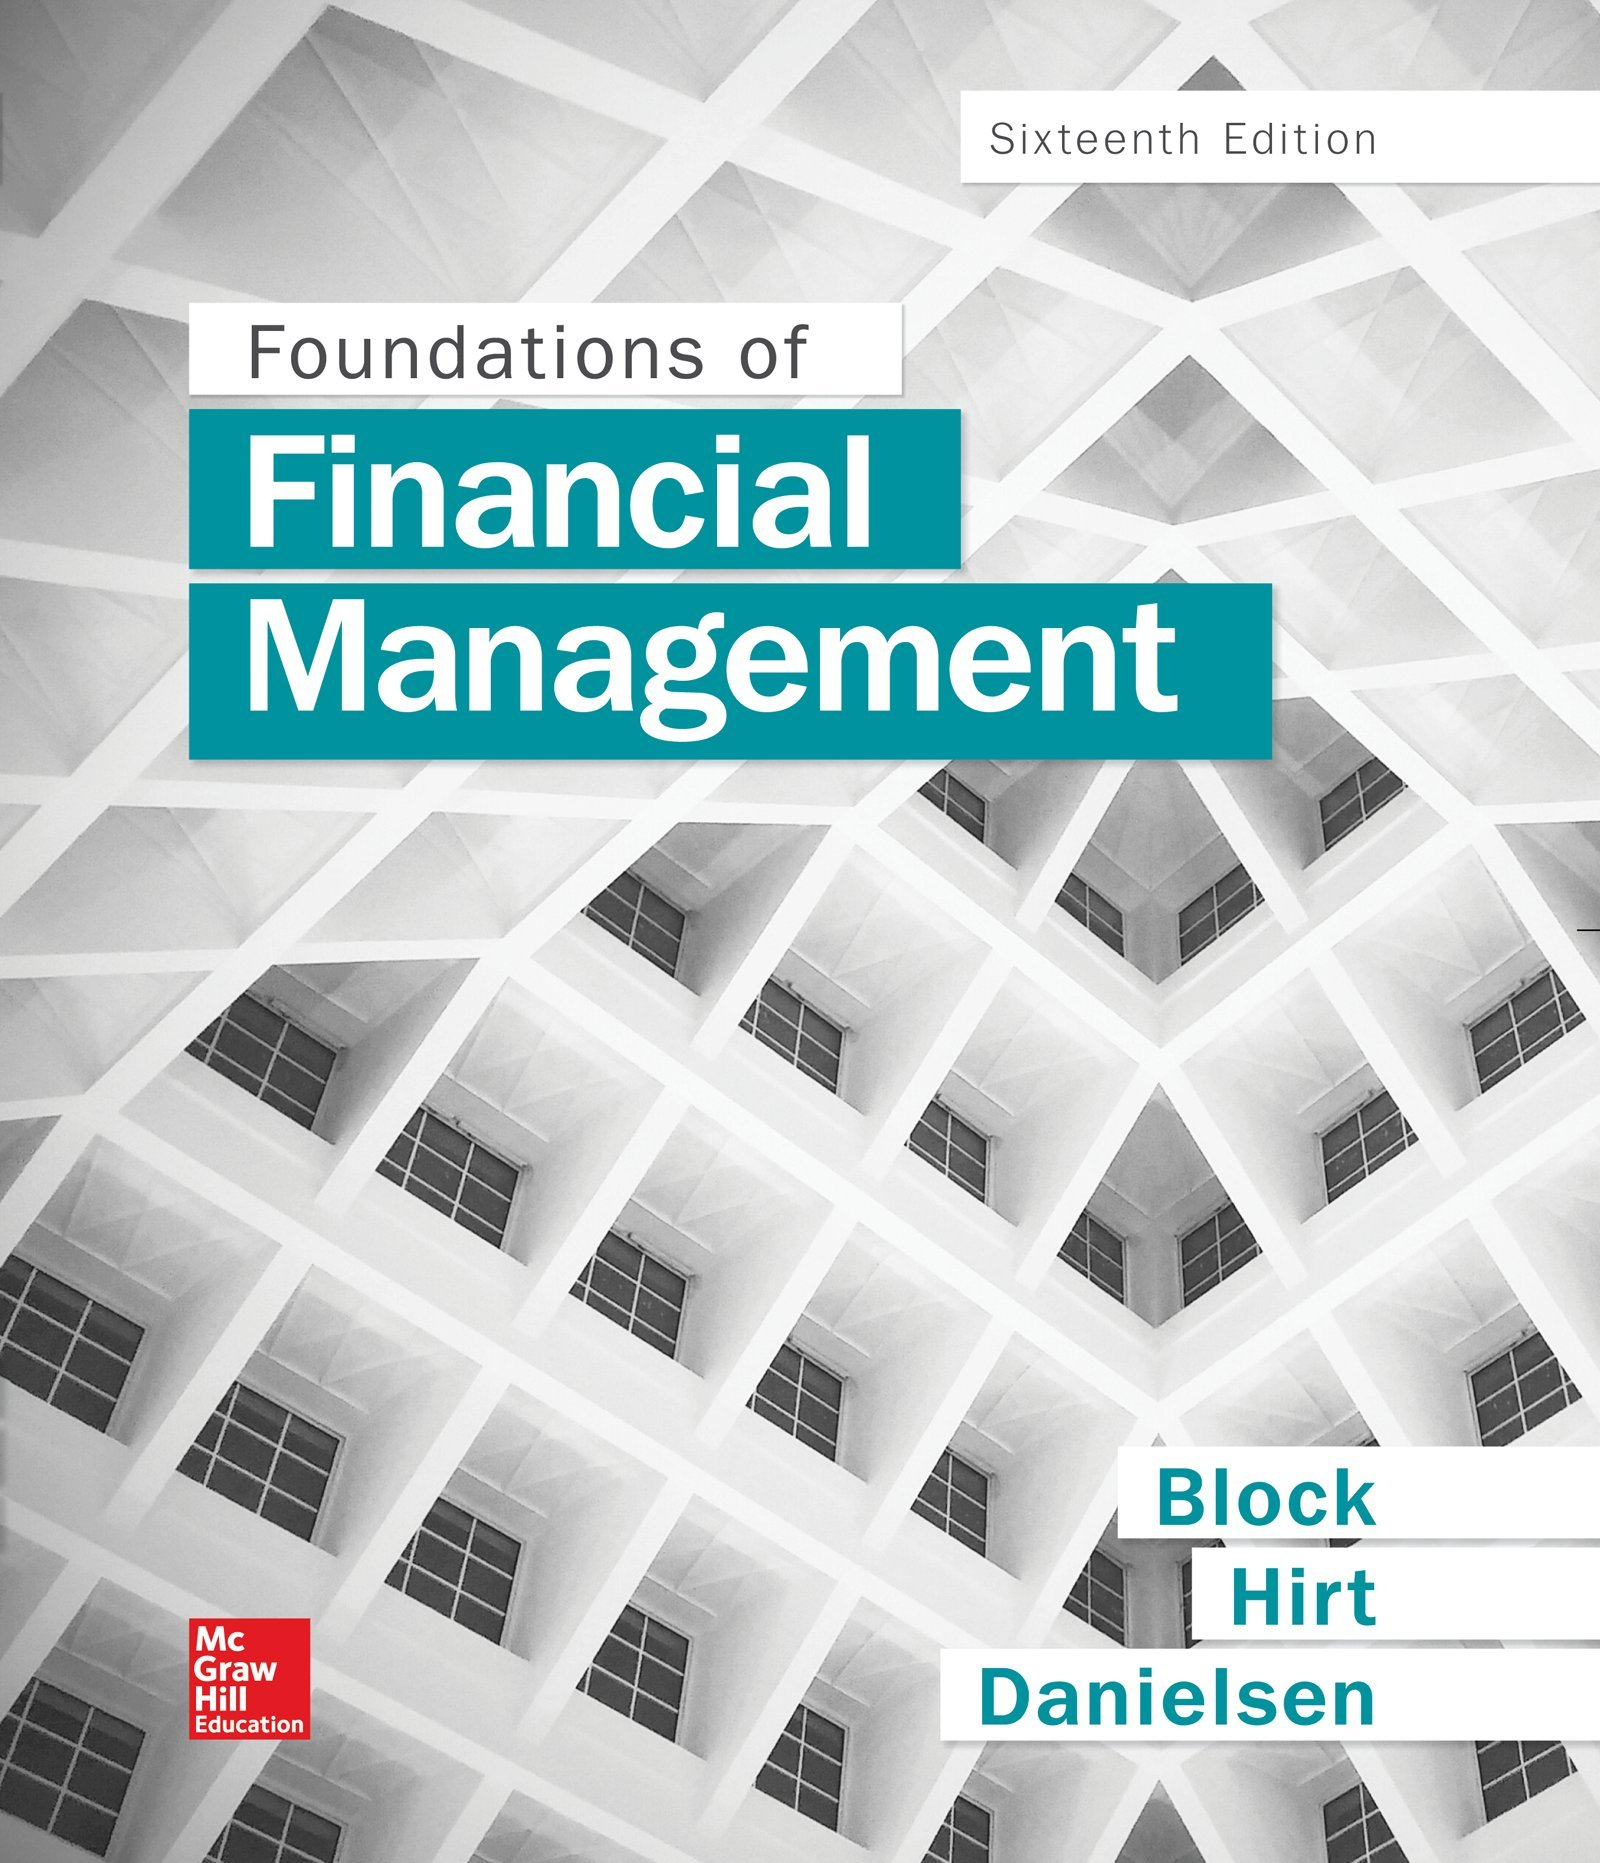 Foundations of Financial Management by McGraw-Hill Education